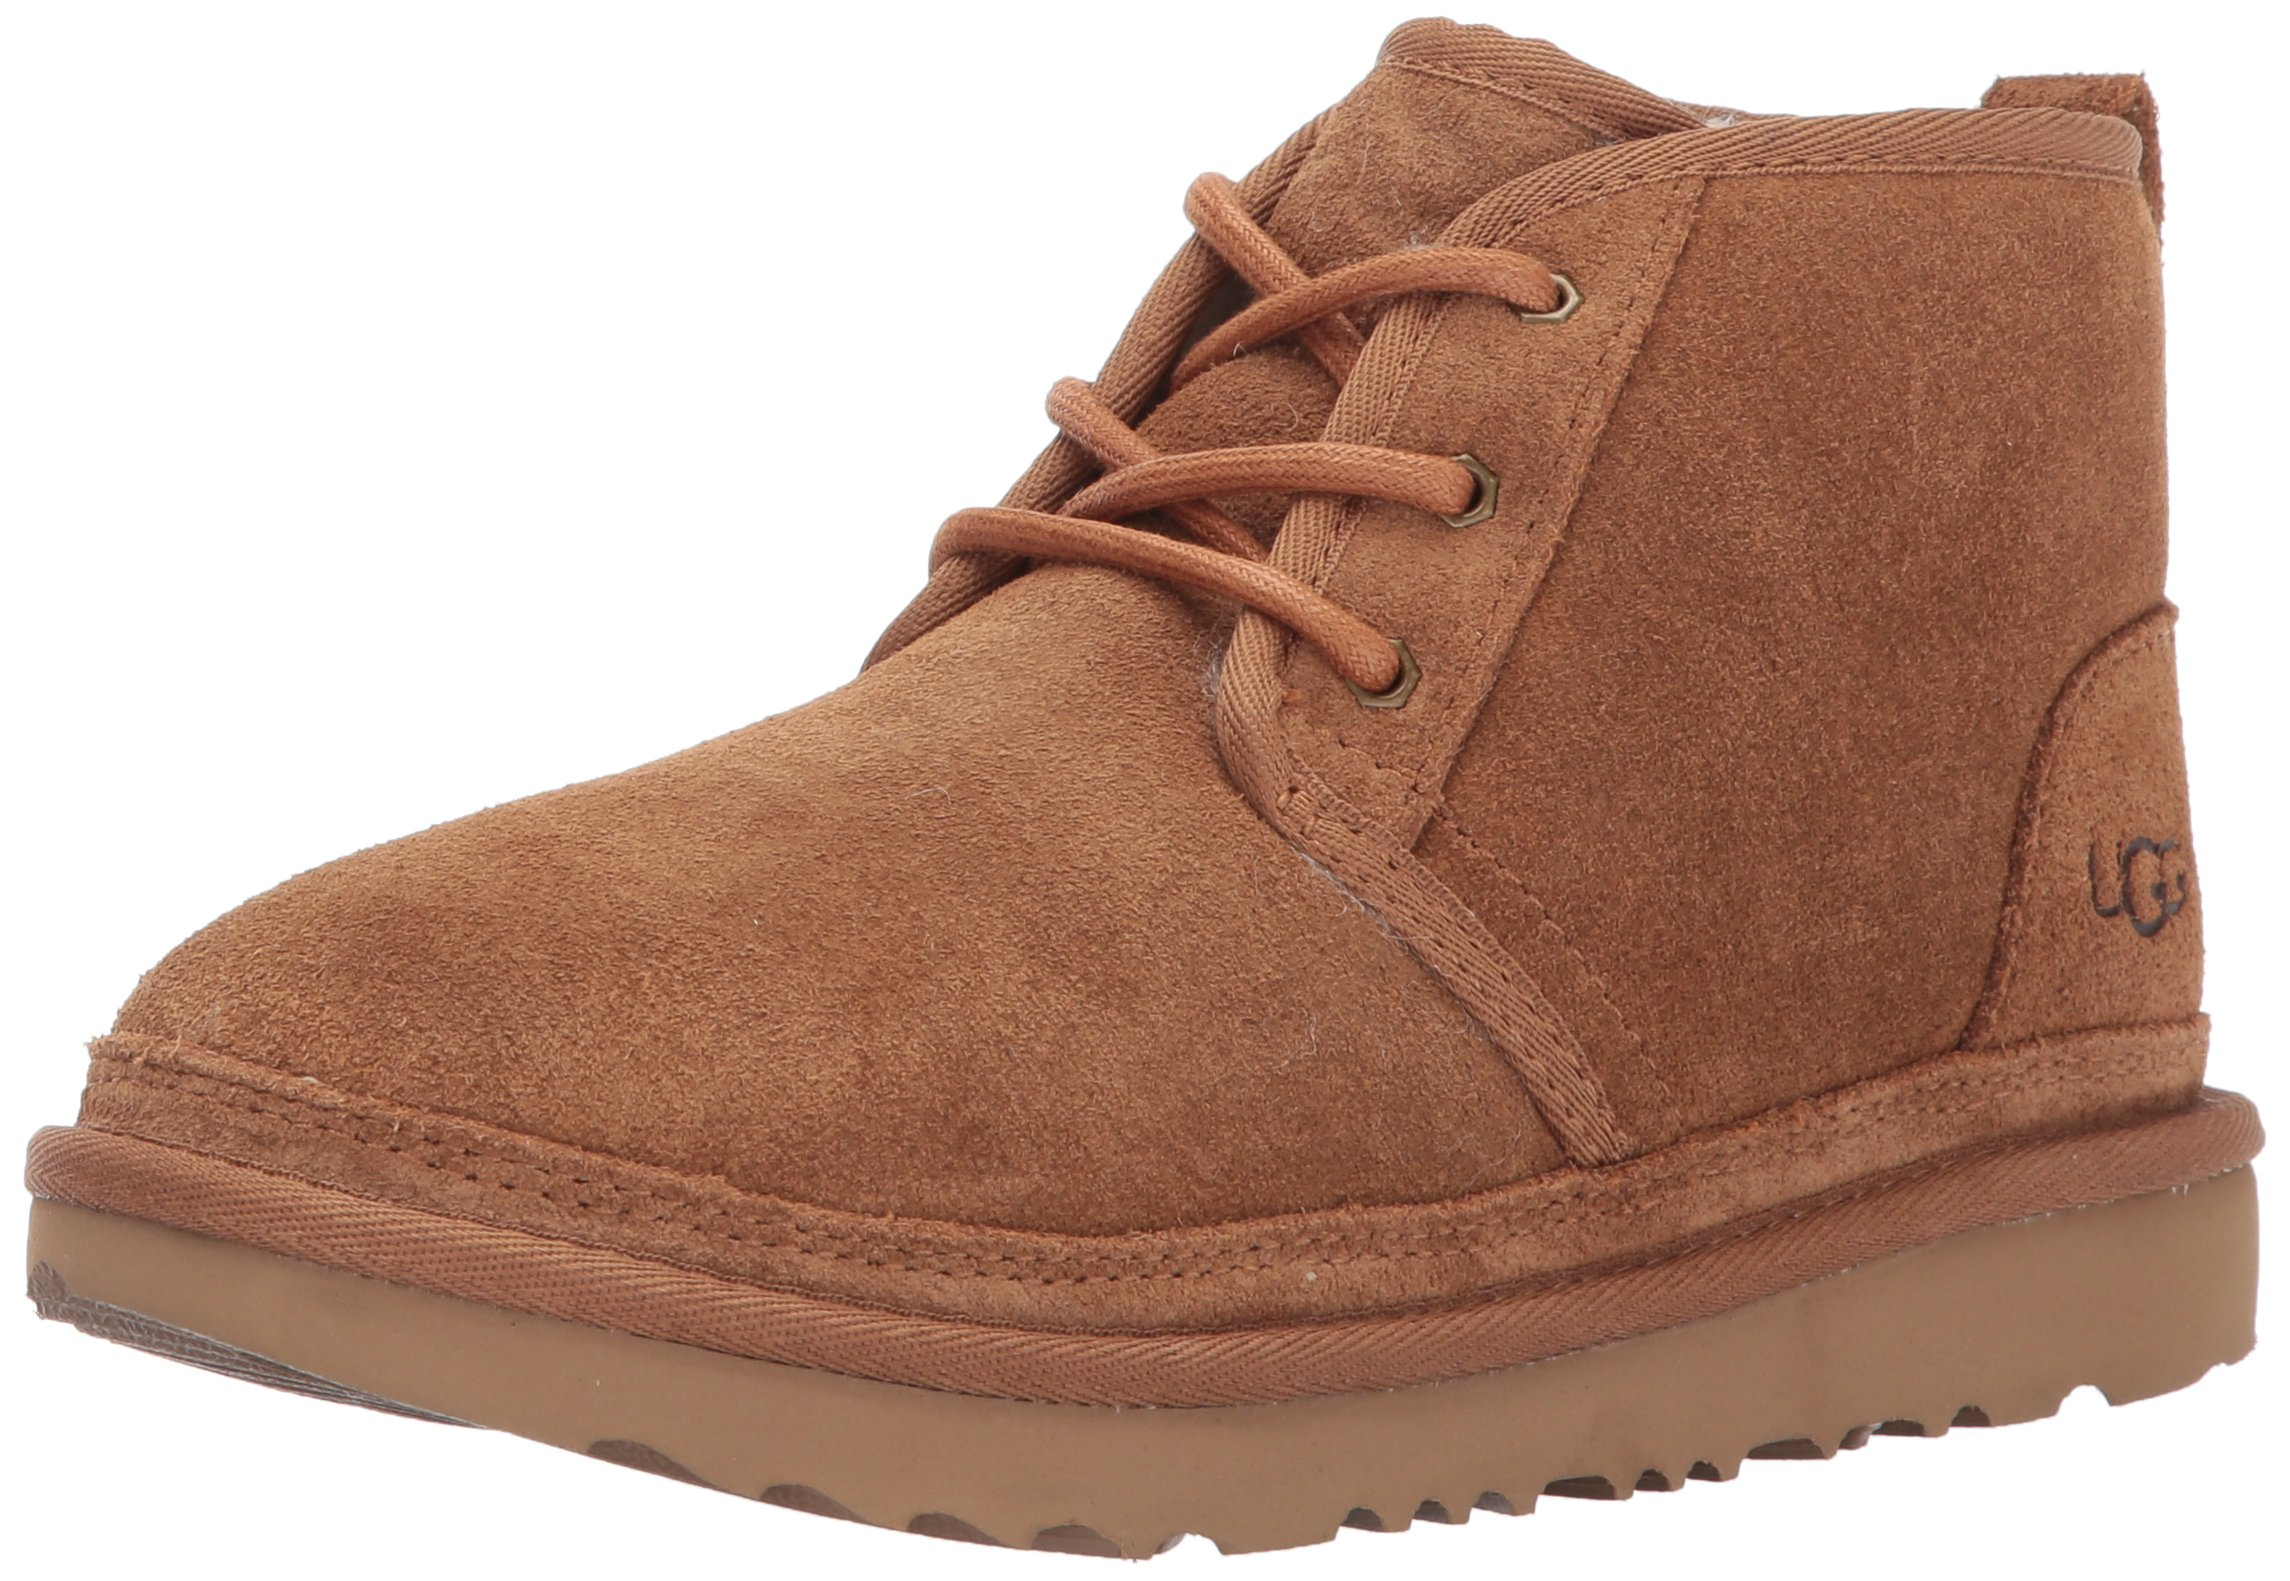 UGG Kids K Neumel II Chukka Boot, Chestnut, 6 M US Big Kid